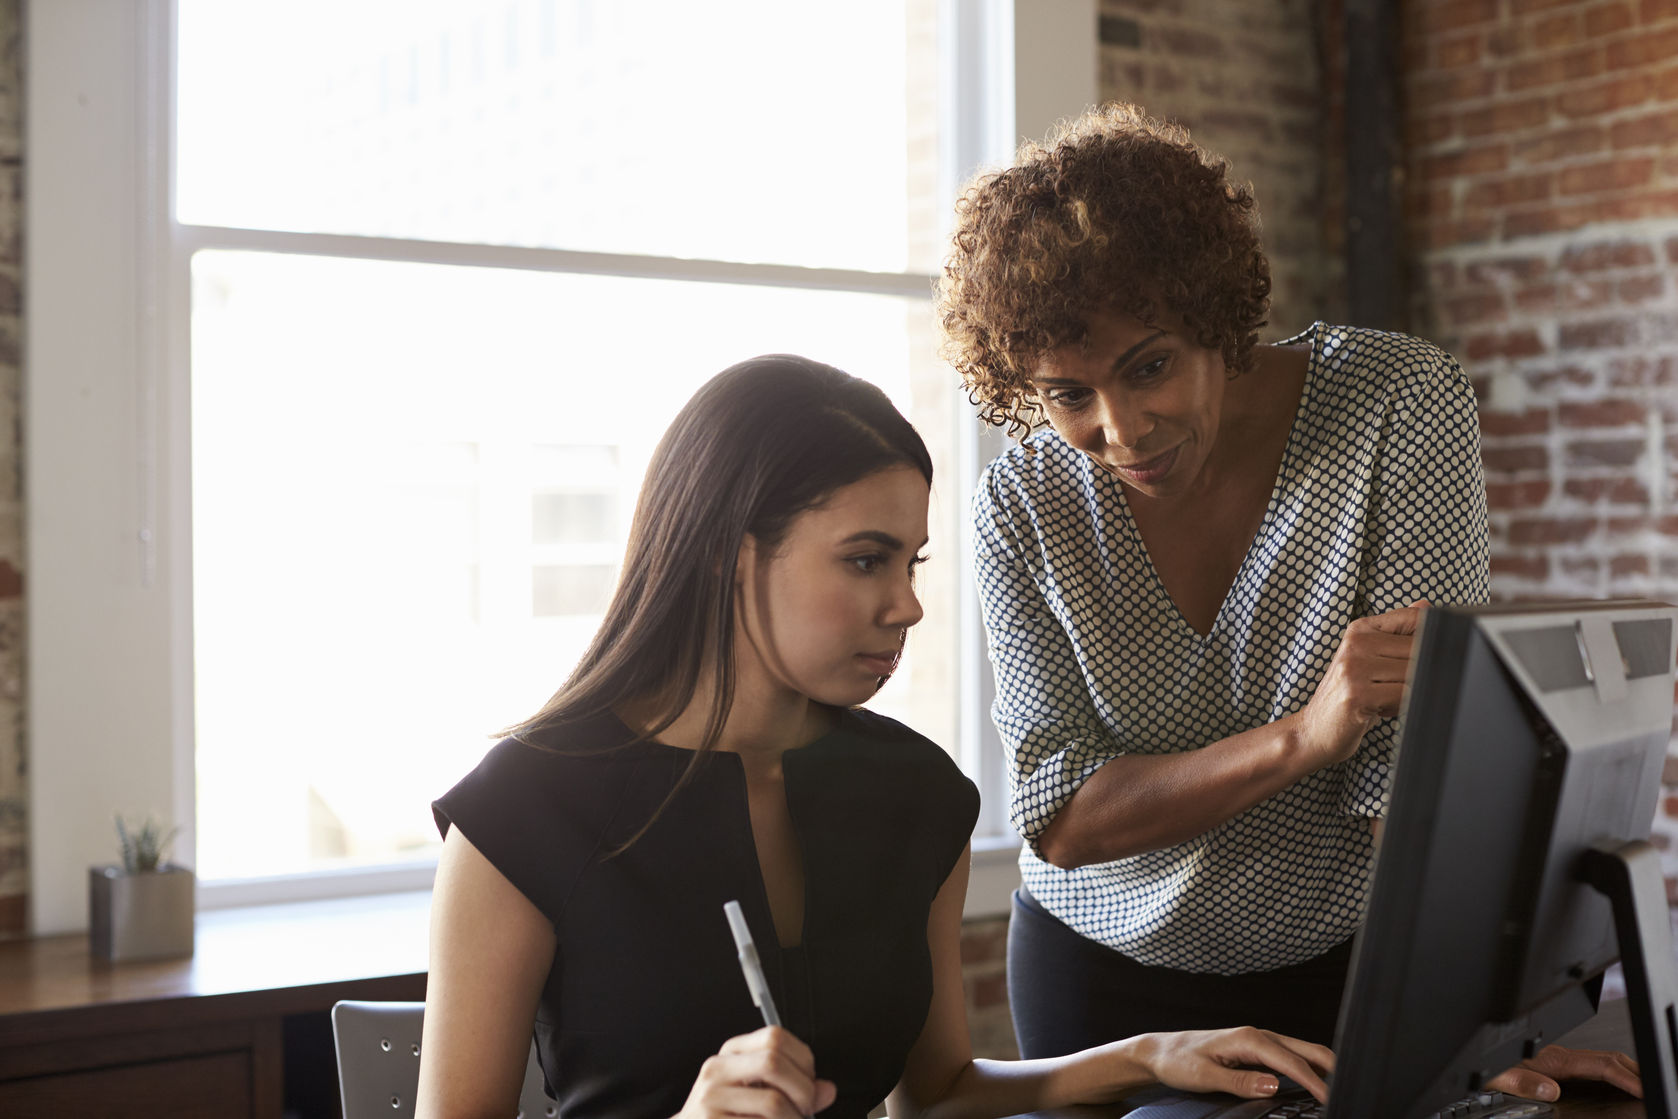 Most leaders don't want to be micromanagers, but slip into bad habits. Here's why they take on these traits and how they differ from successful leadership actions.